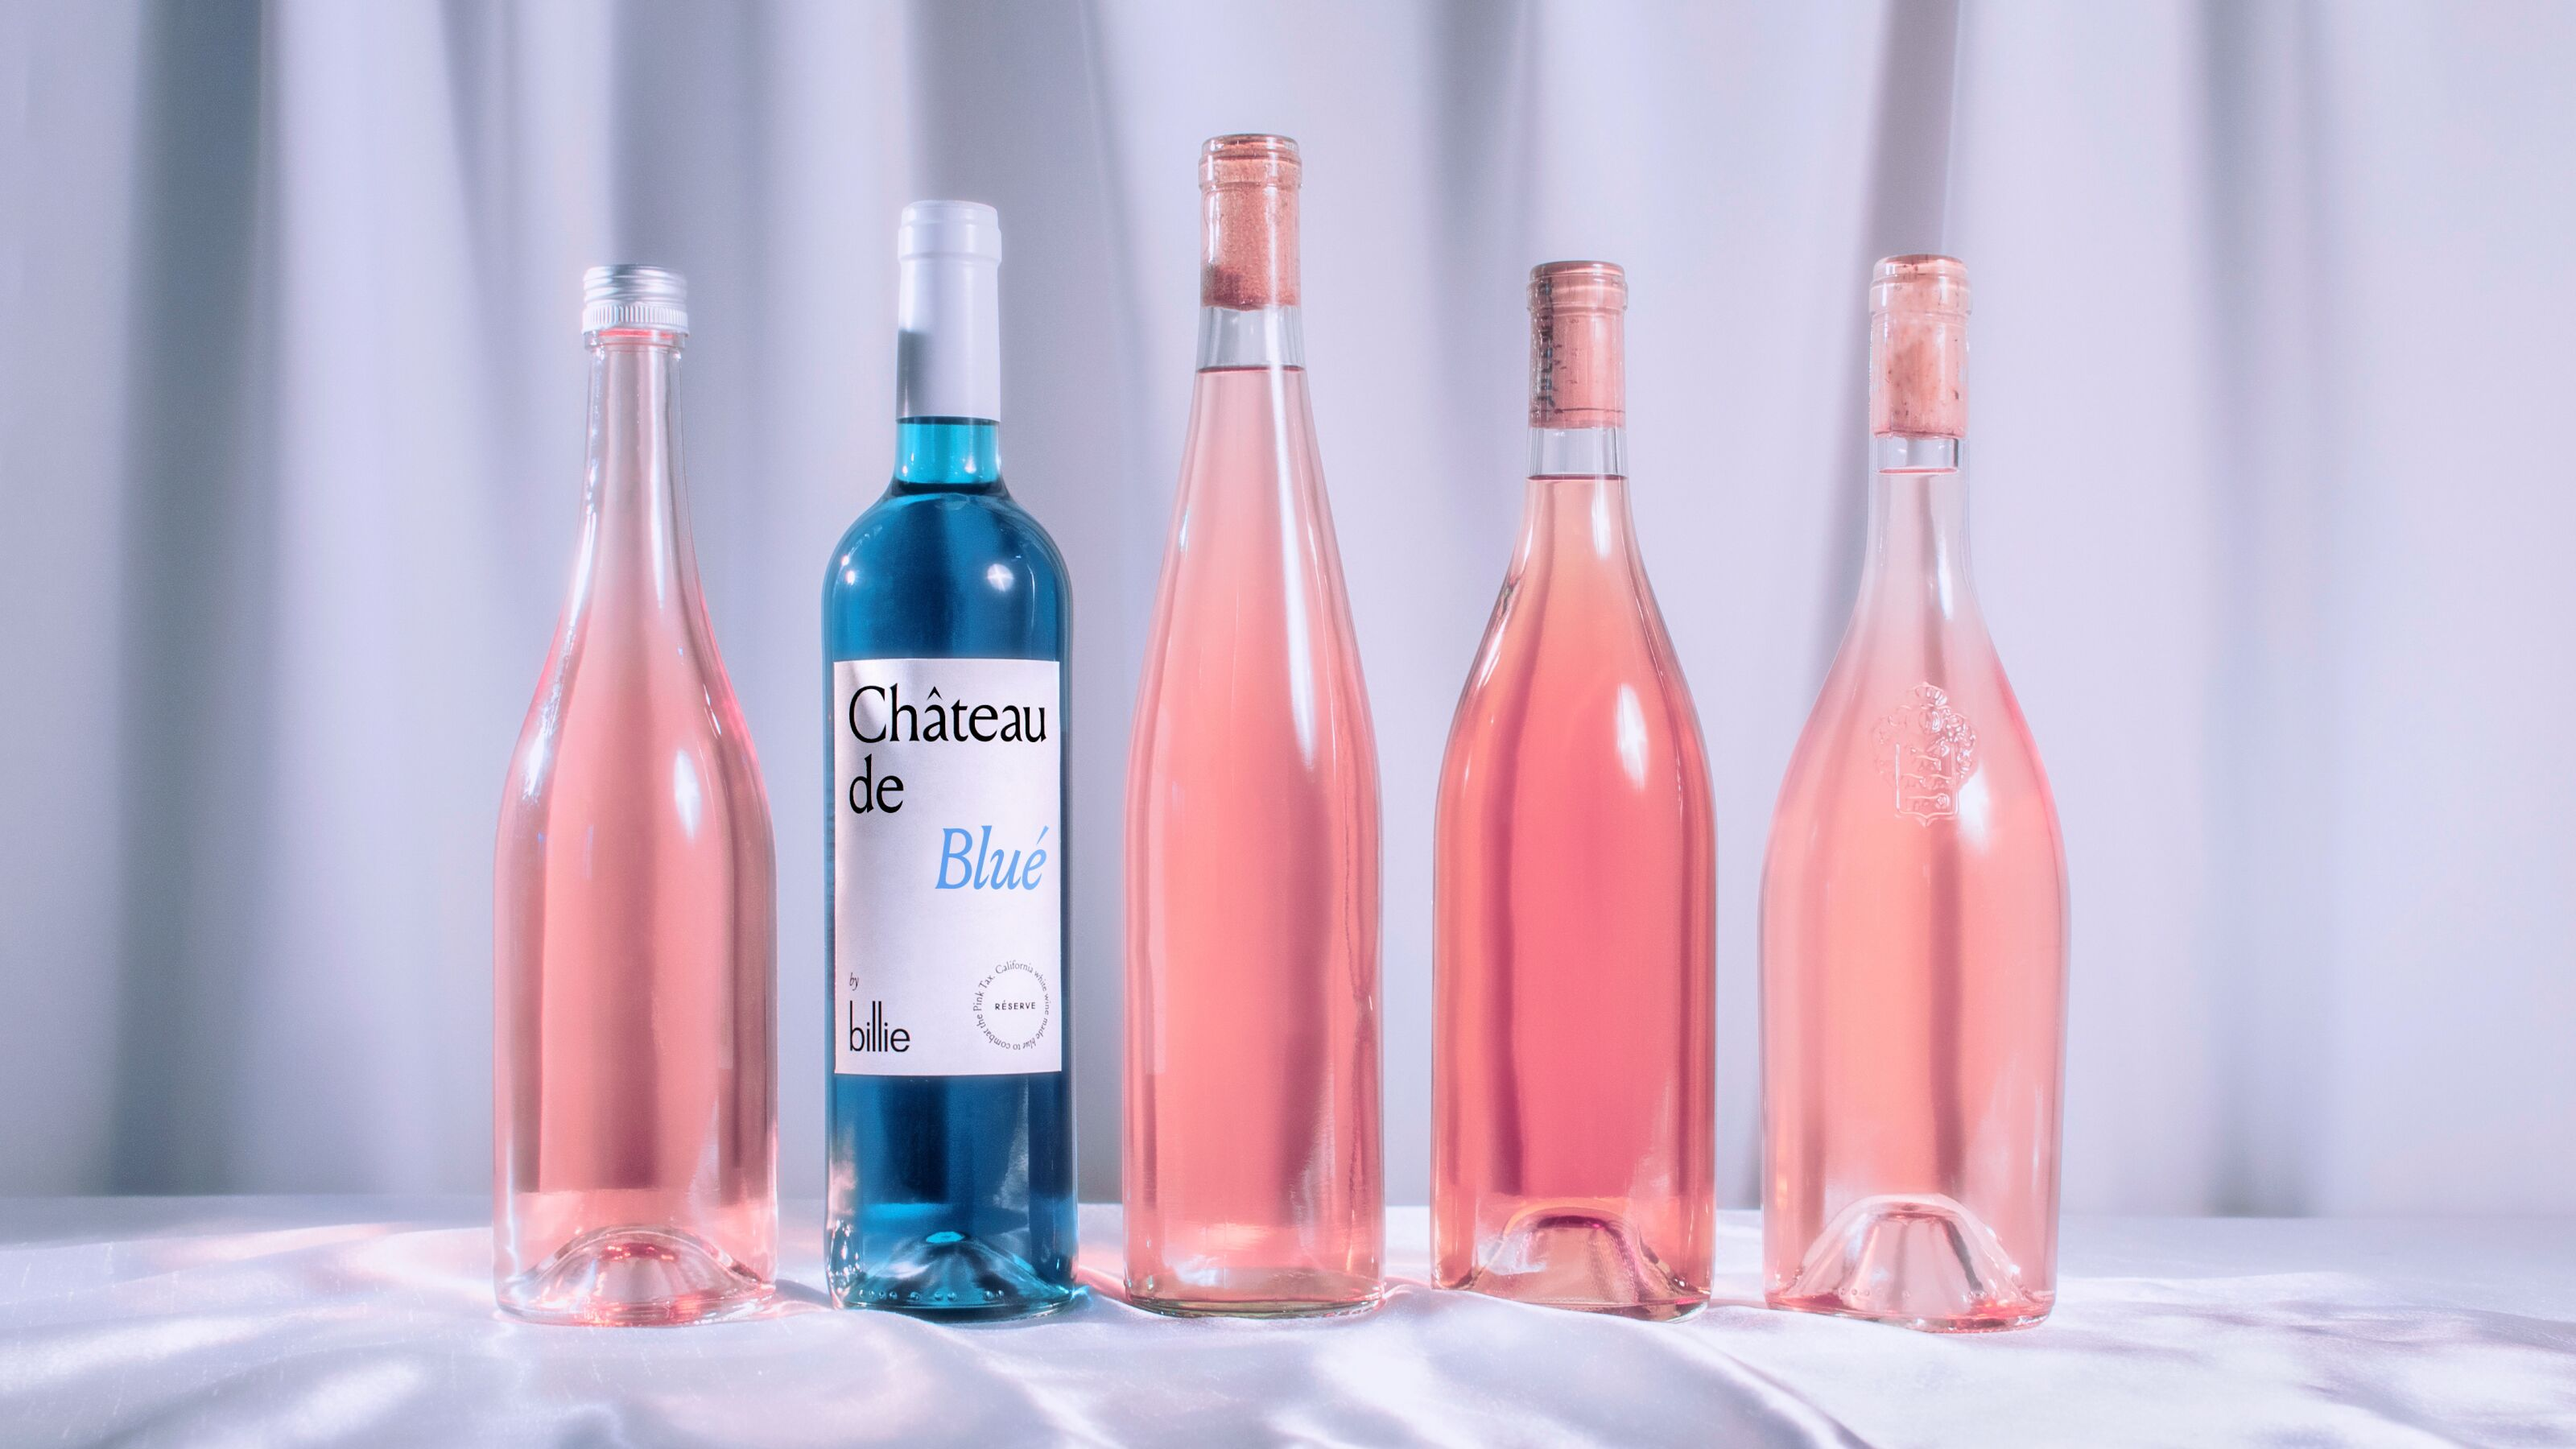 Blue wine makes a colorful statement about the pink tax